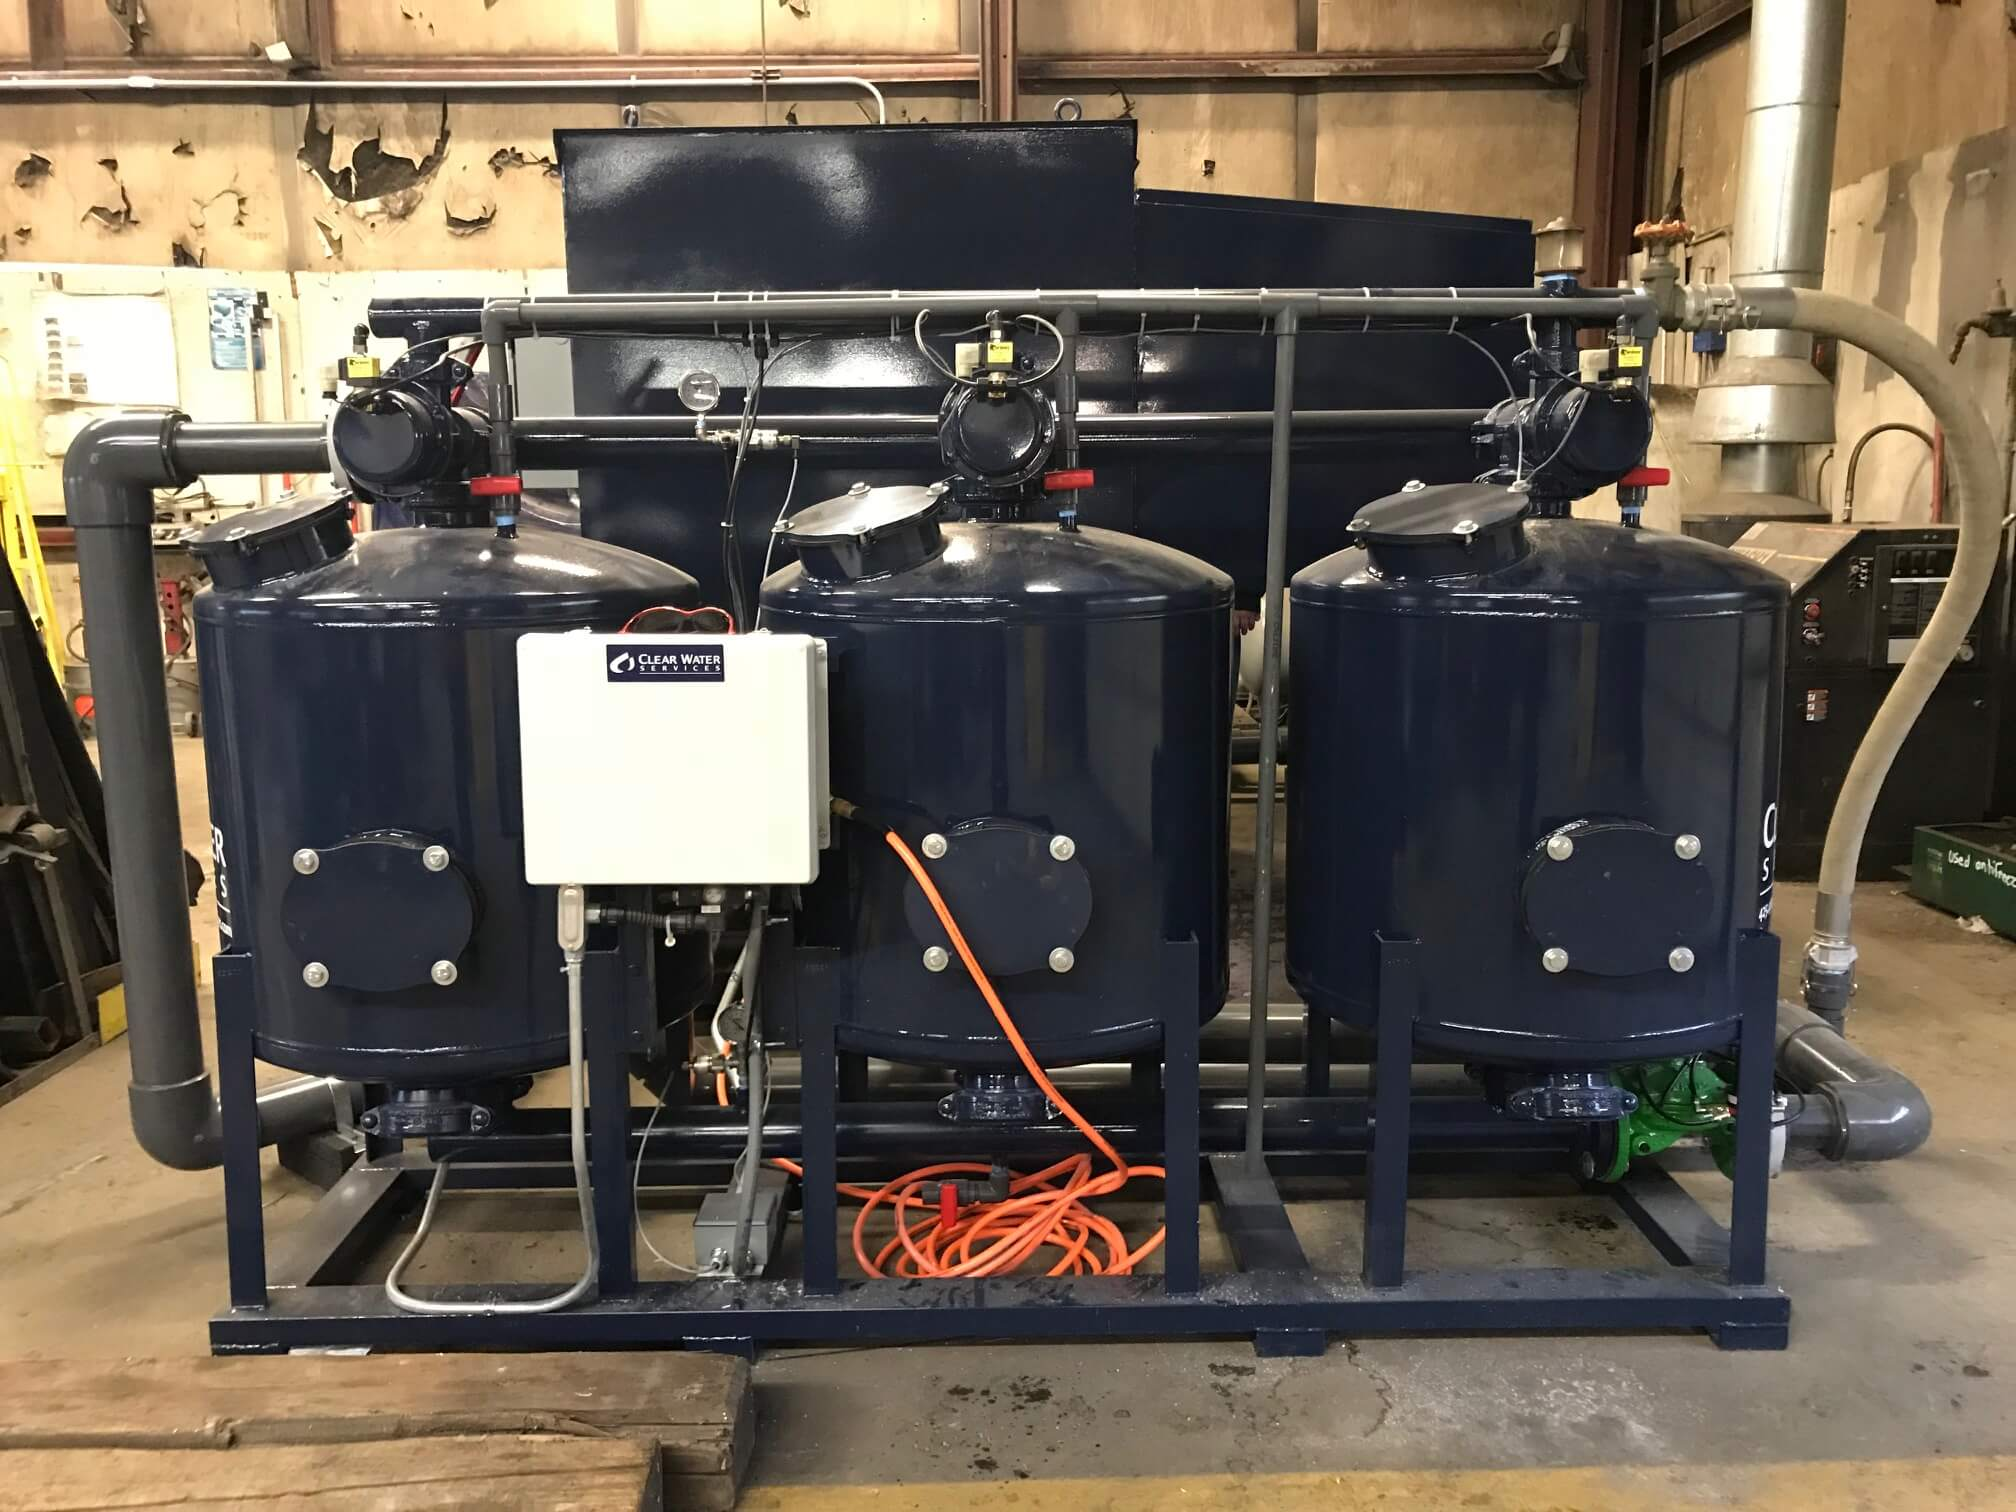 Triplex sand filters with a control box